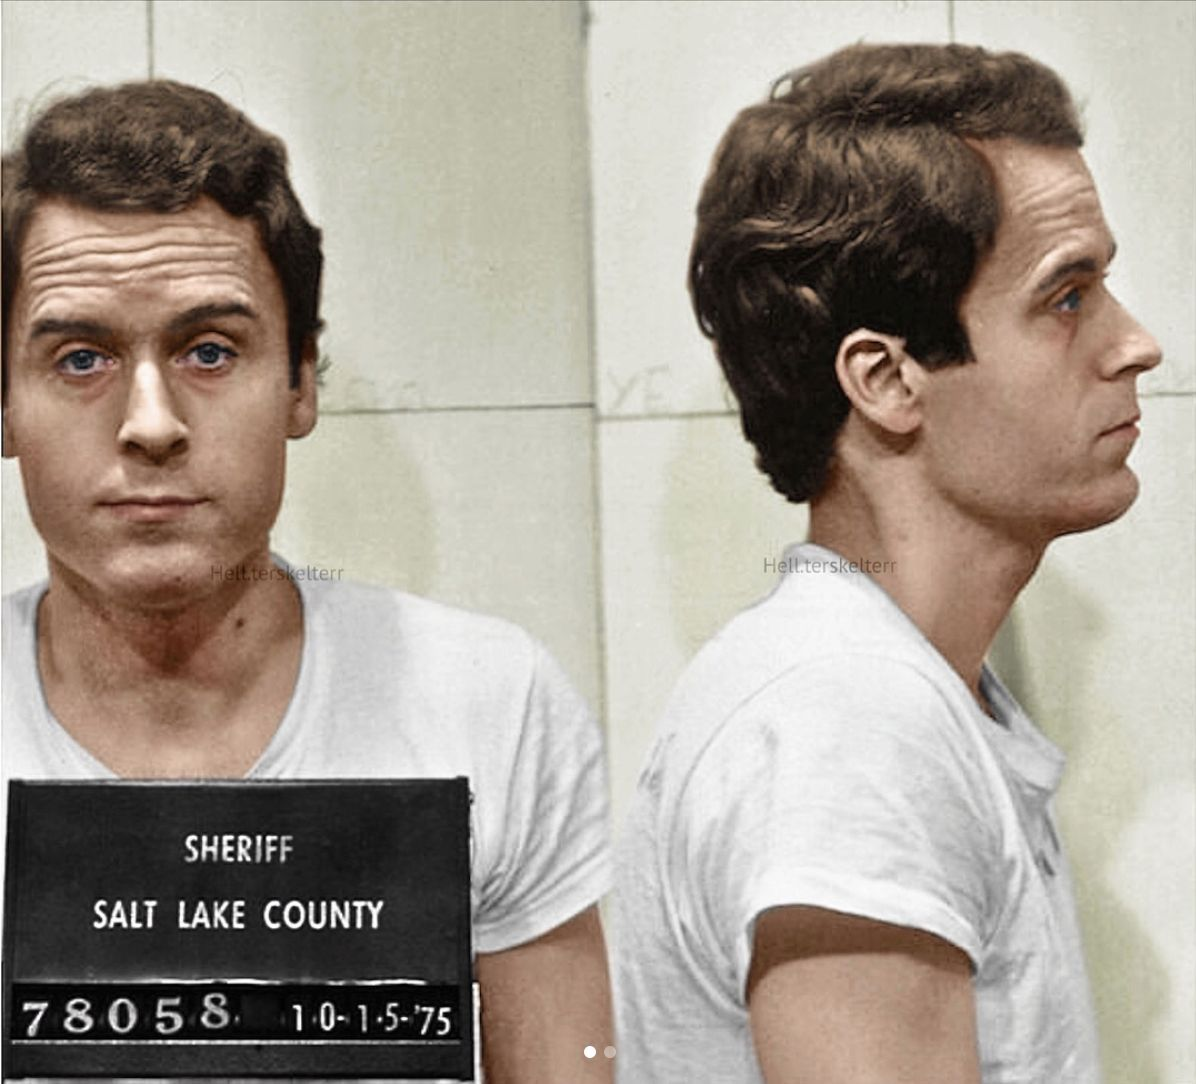 Pin by bb on oof teddy | Ted bundy, Famous serial killers, Serial